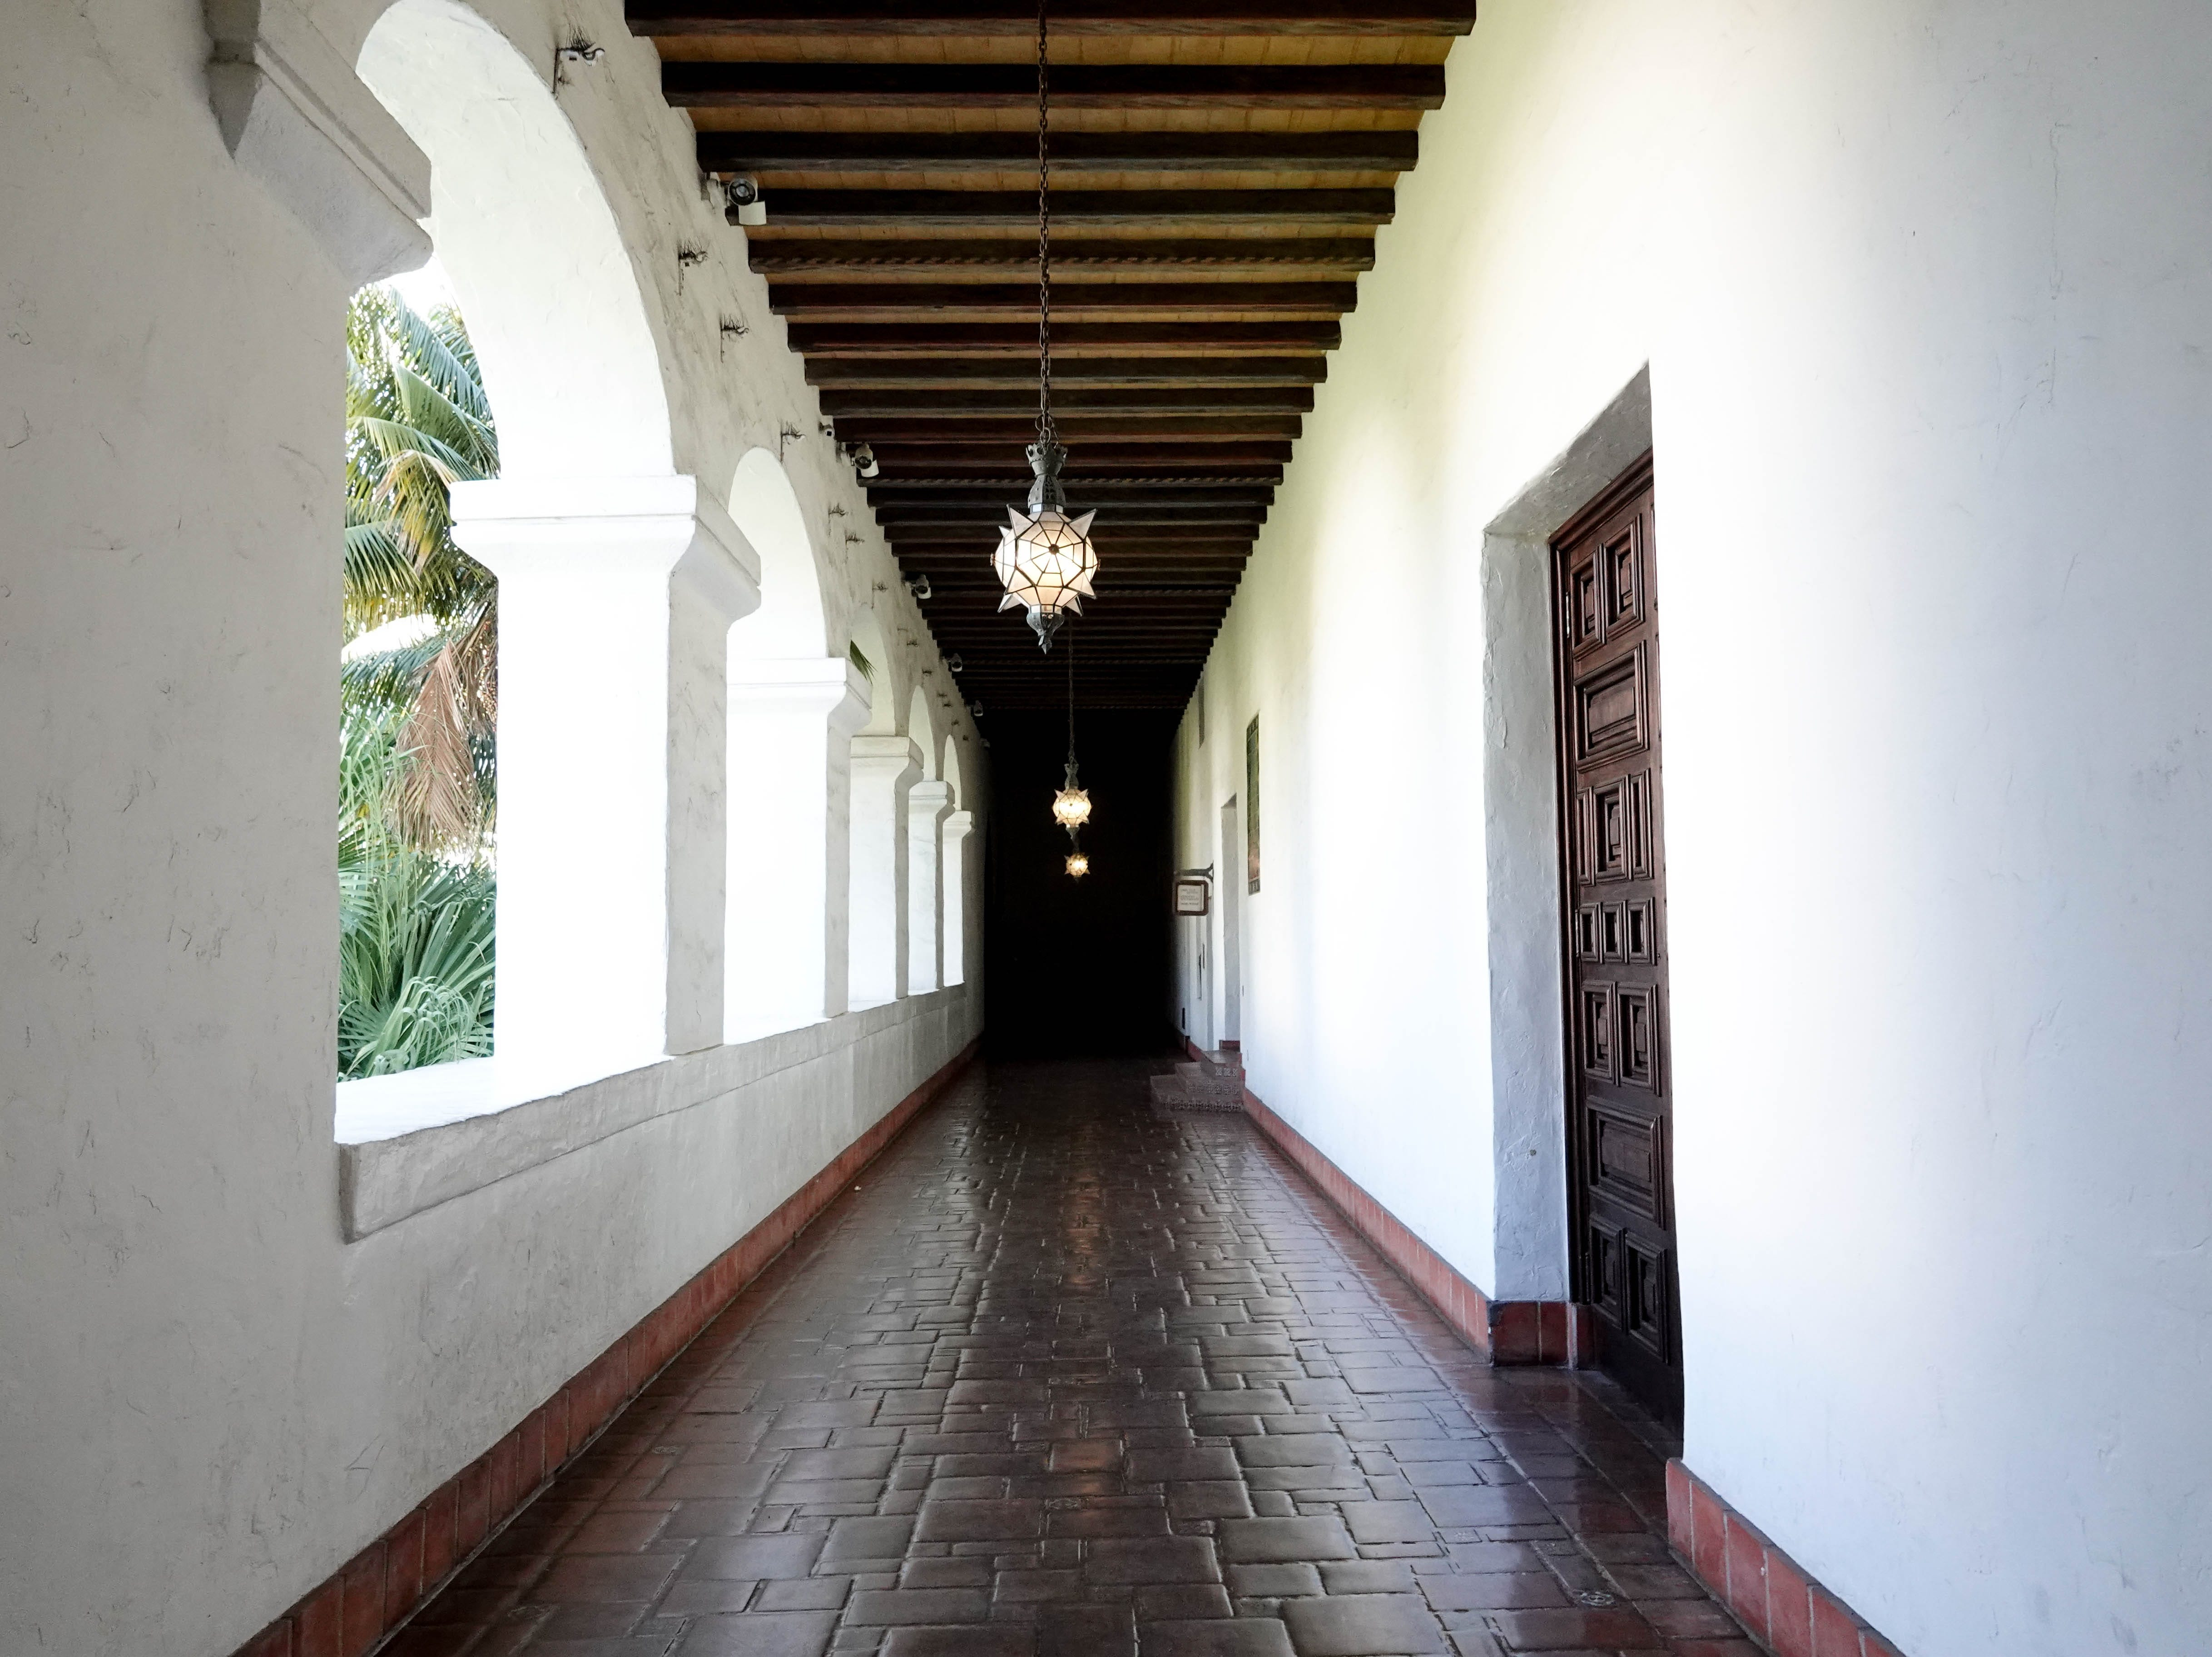 Walkway at the Santa Barbara County Courthouse.